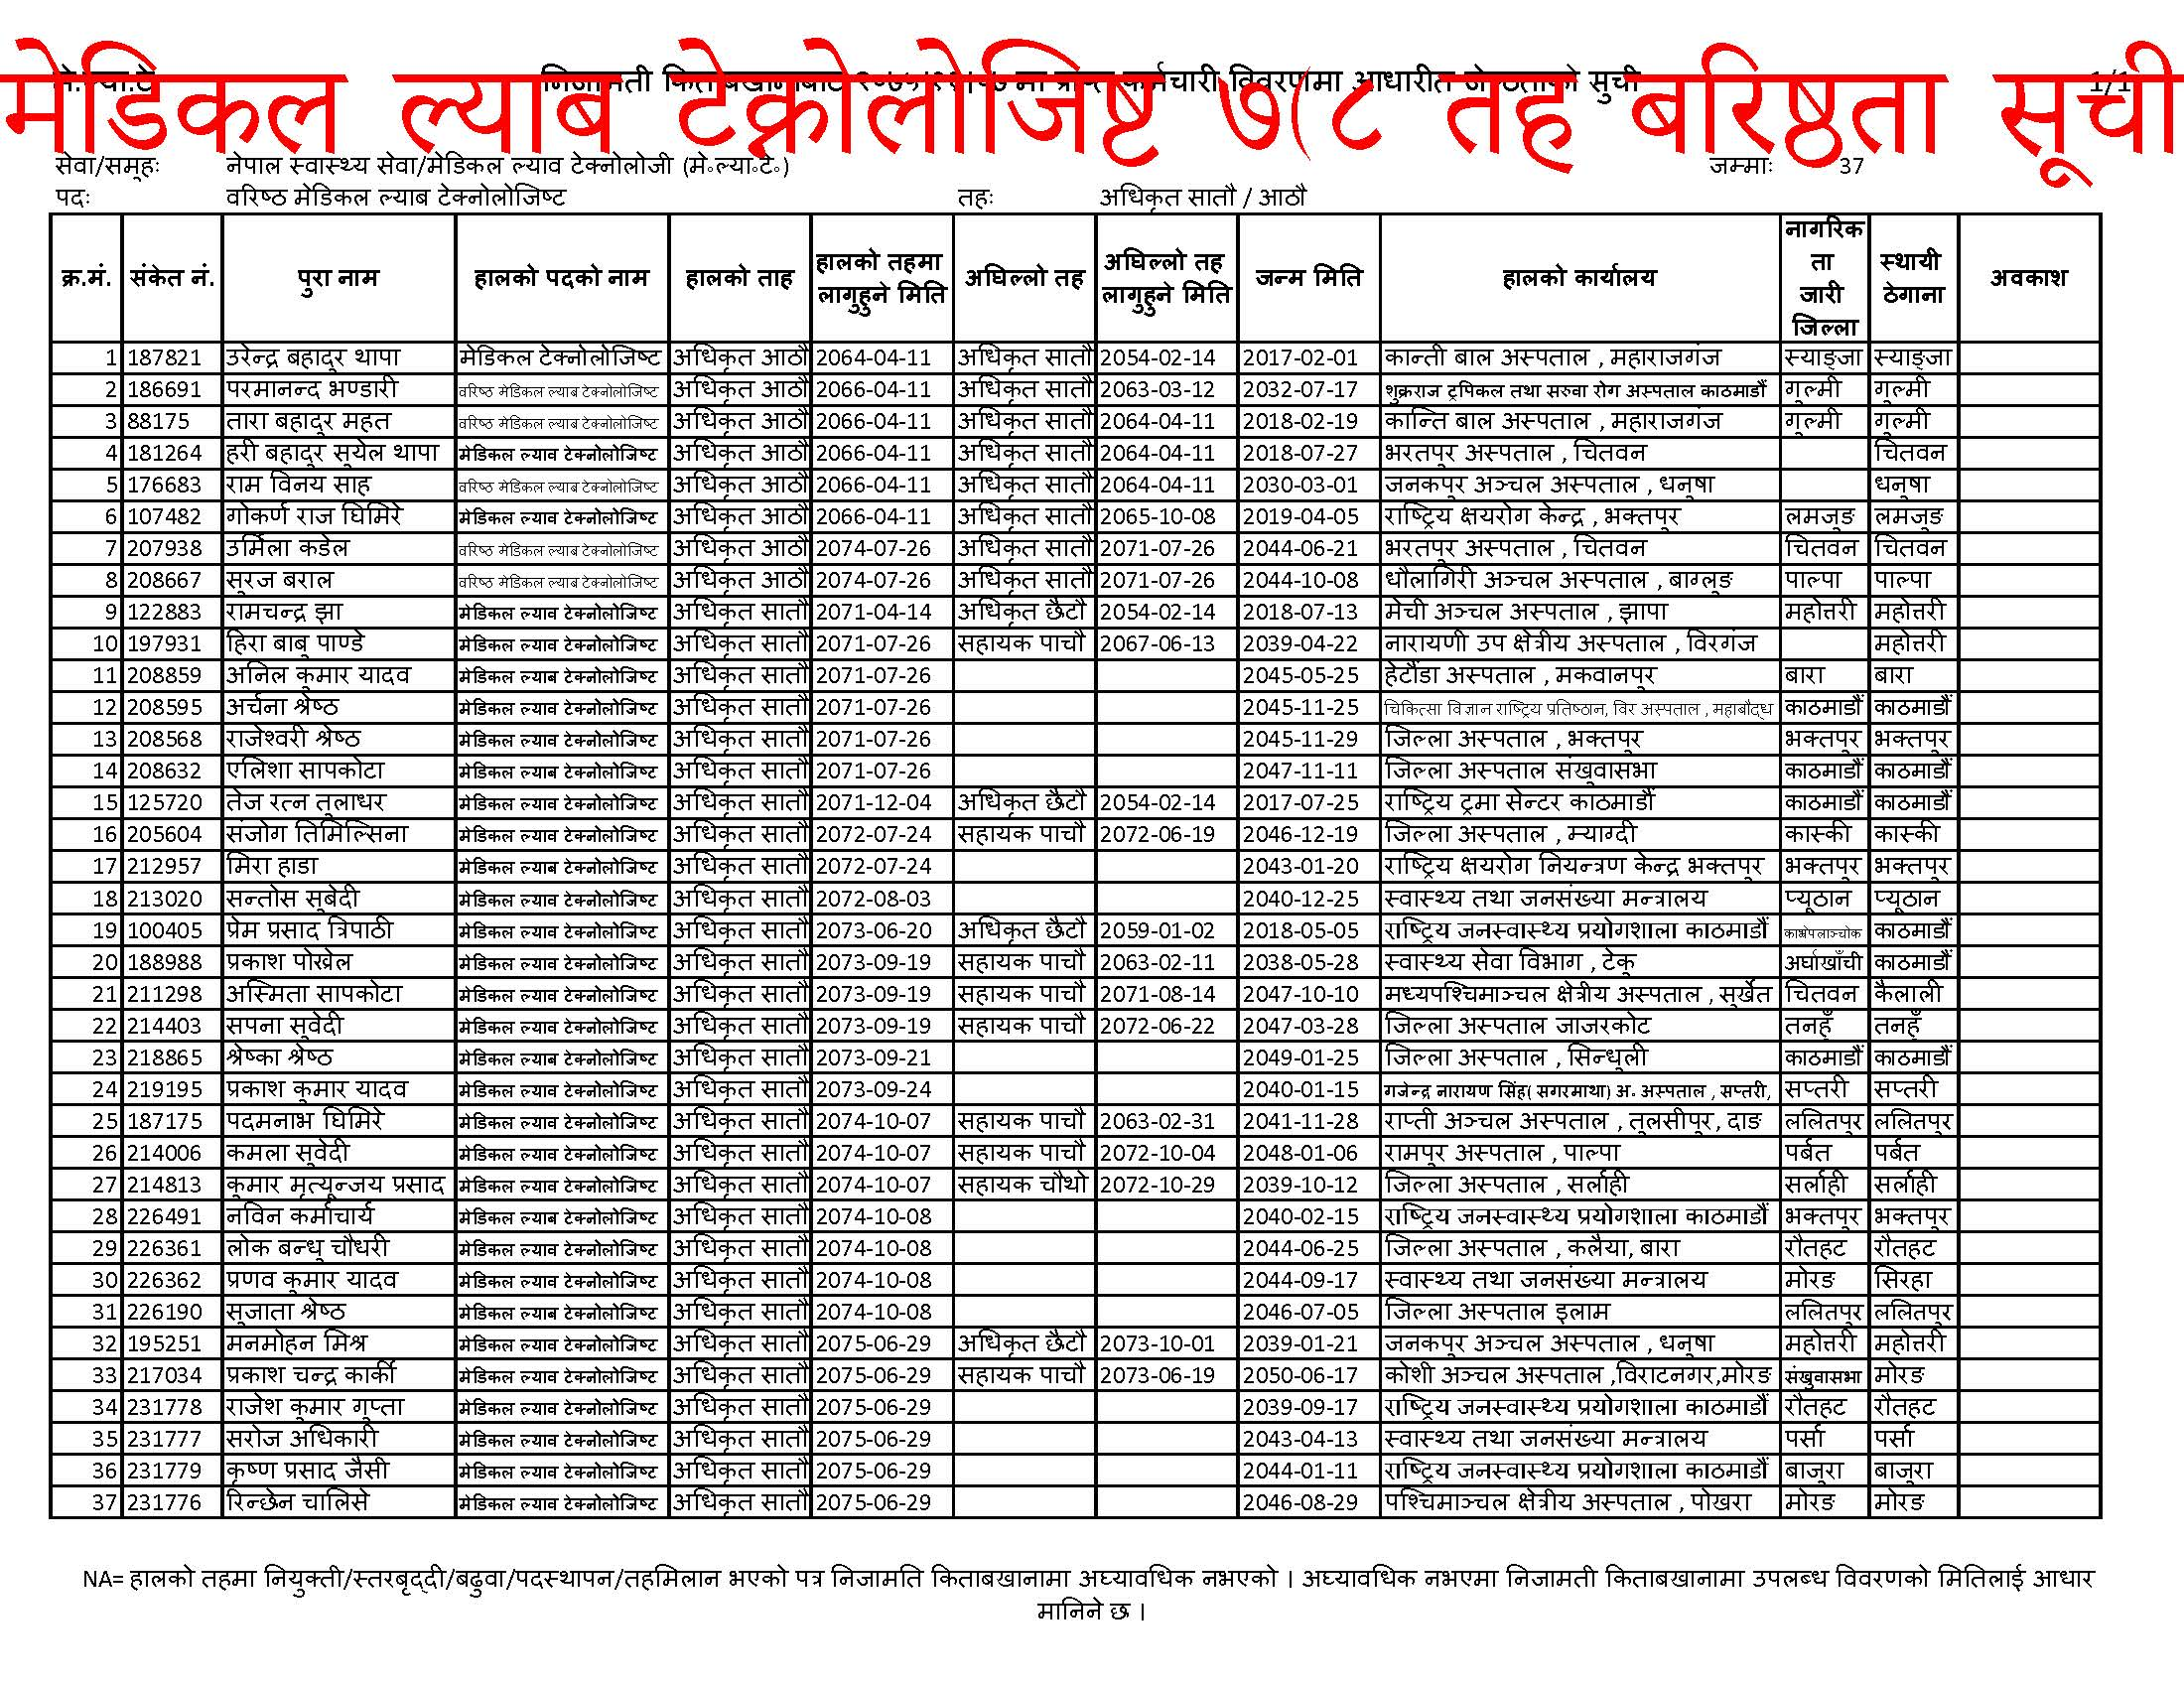 Health Seniors Details, Health Seniors, Lab Technical Health Seniors, Jana Swasthe Seniors, HA Officer Health Seniors, Staff Nurse Officer Health Seniors, HA Officer Seniors, Staff Nurse Officer seniors, Medical Officer Health Seniors, Medical Officer Seniors, Shiksha Adhikrit seniors, Pharmacy seniors, Health Nursing seniors, seniors, आयु्र्वेद चिकित्सक Heaalth Seniors, Swasthe karmachari, Swasthe karmachari seniours, Health samayojan, Health samayojan name list, Health samayojan.gov.np,